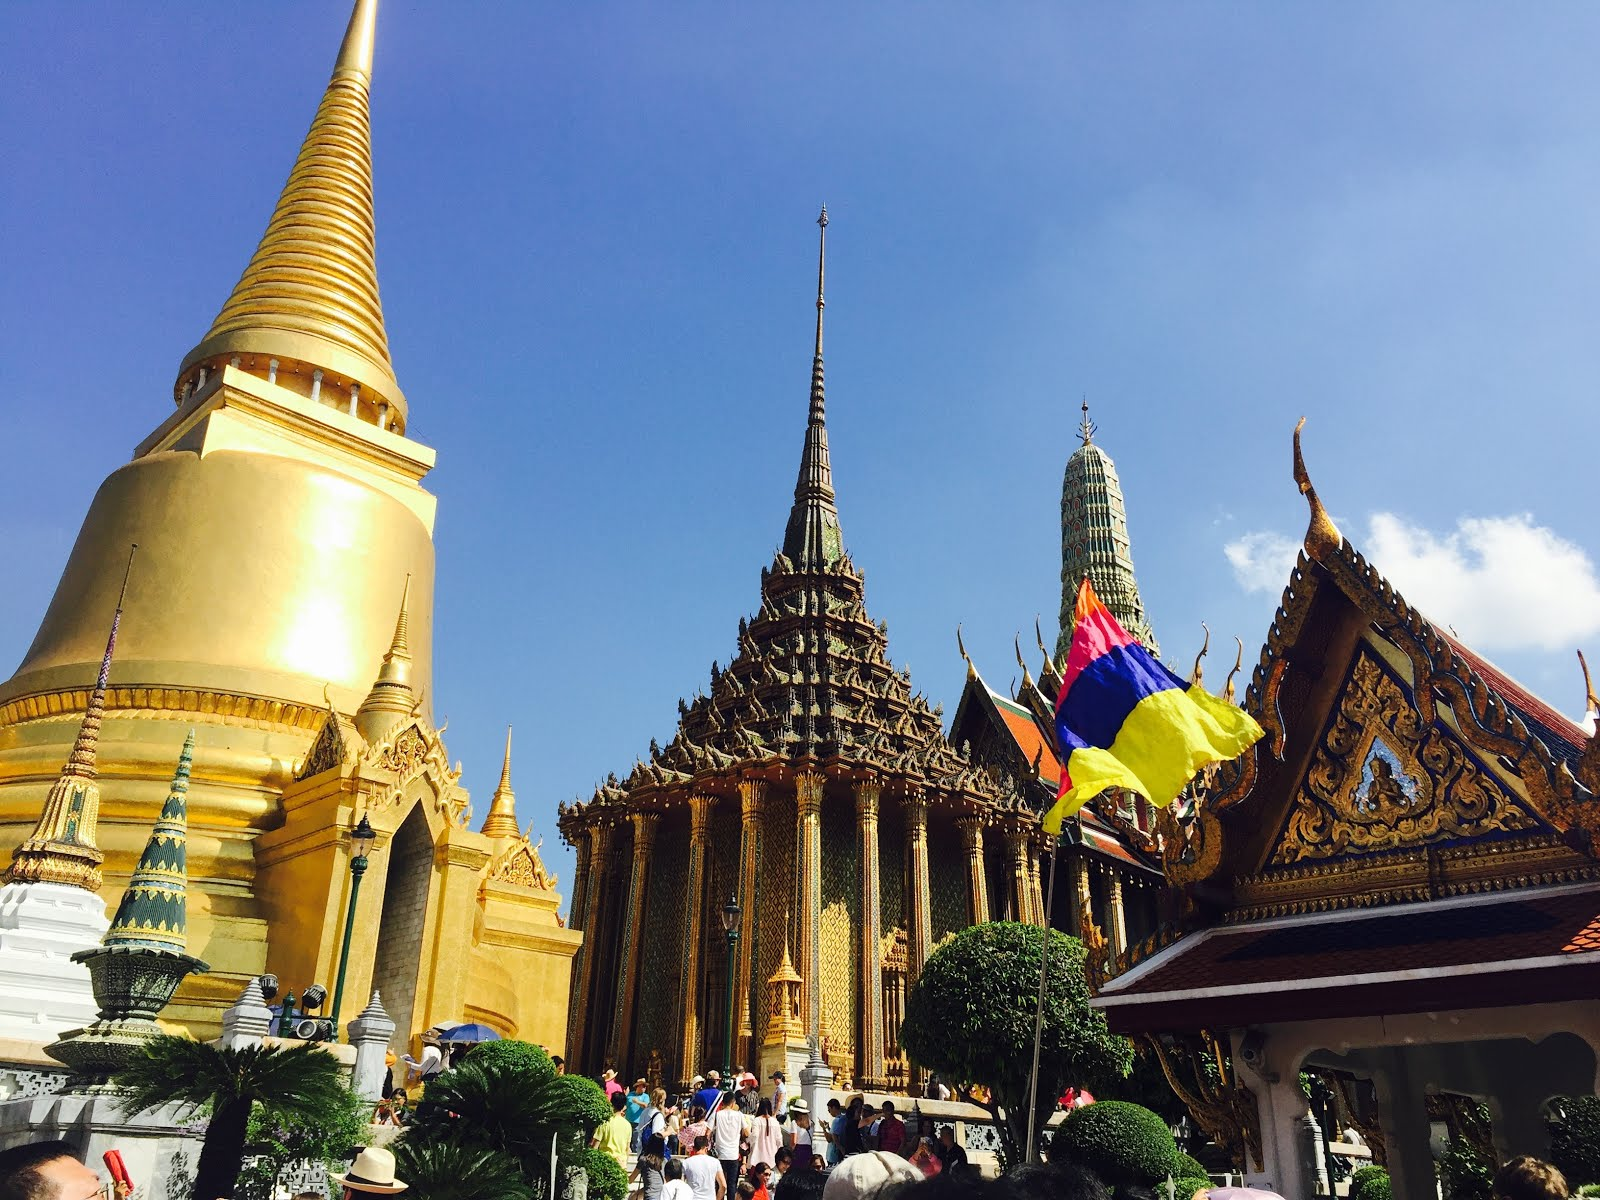 Views of the Grand Palace - What to see and do in Bangkok